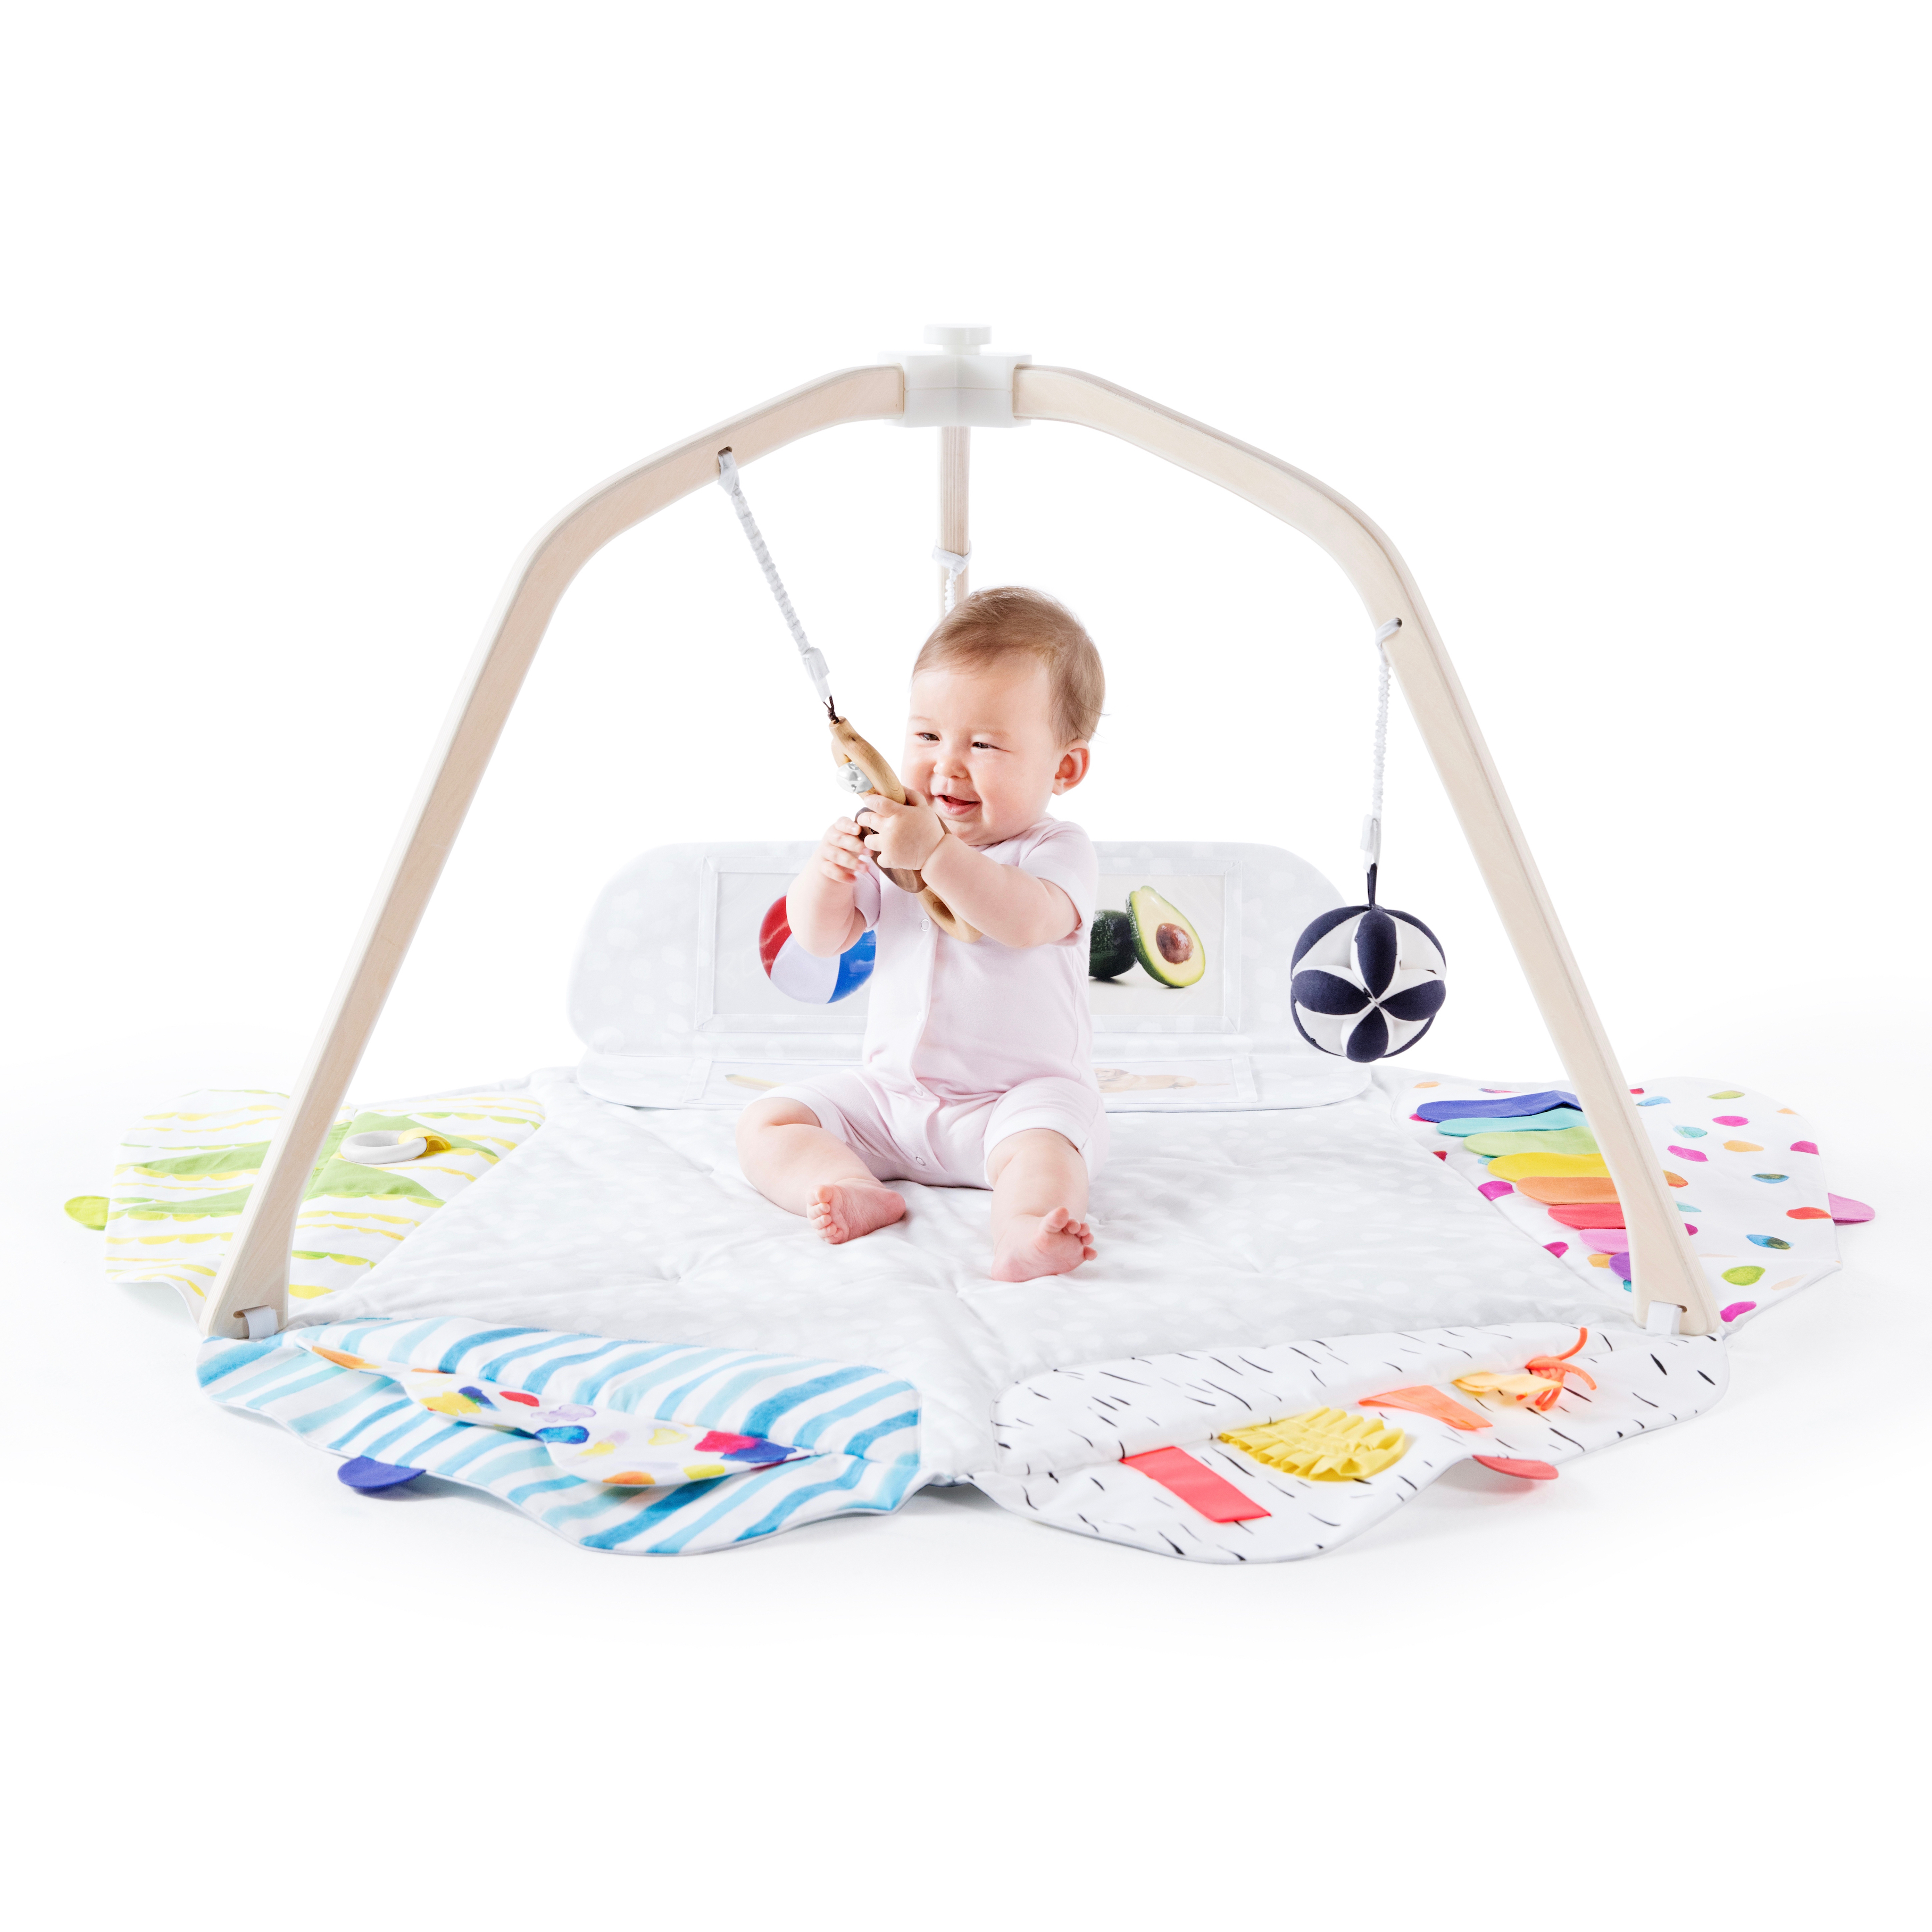 The Play Gym by Lovevery - $140.00